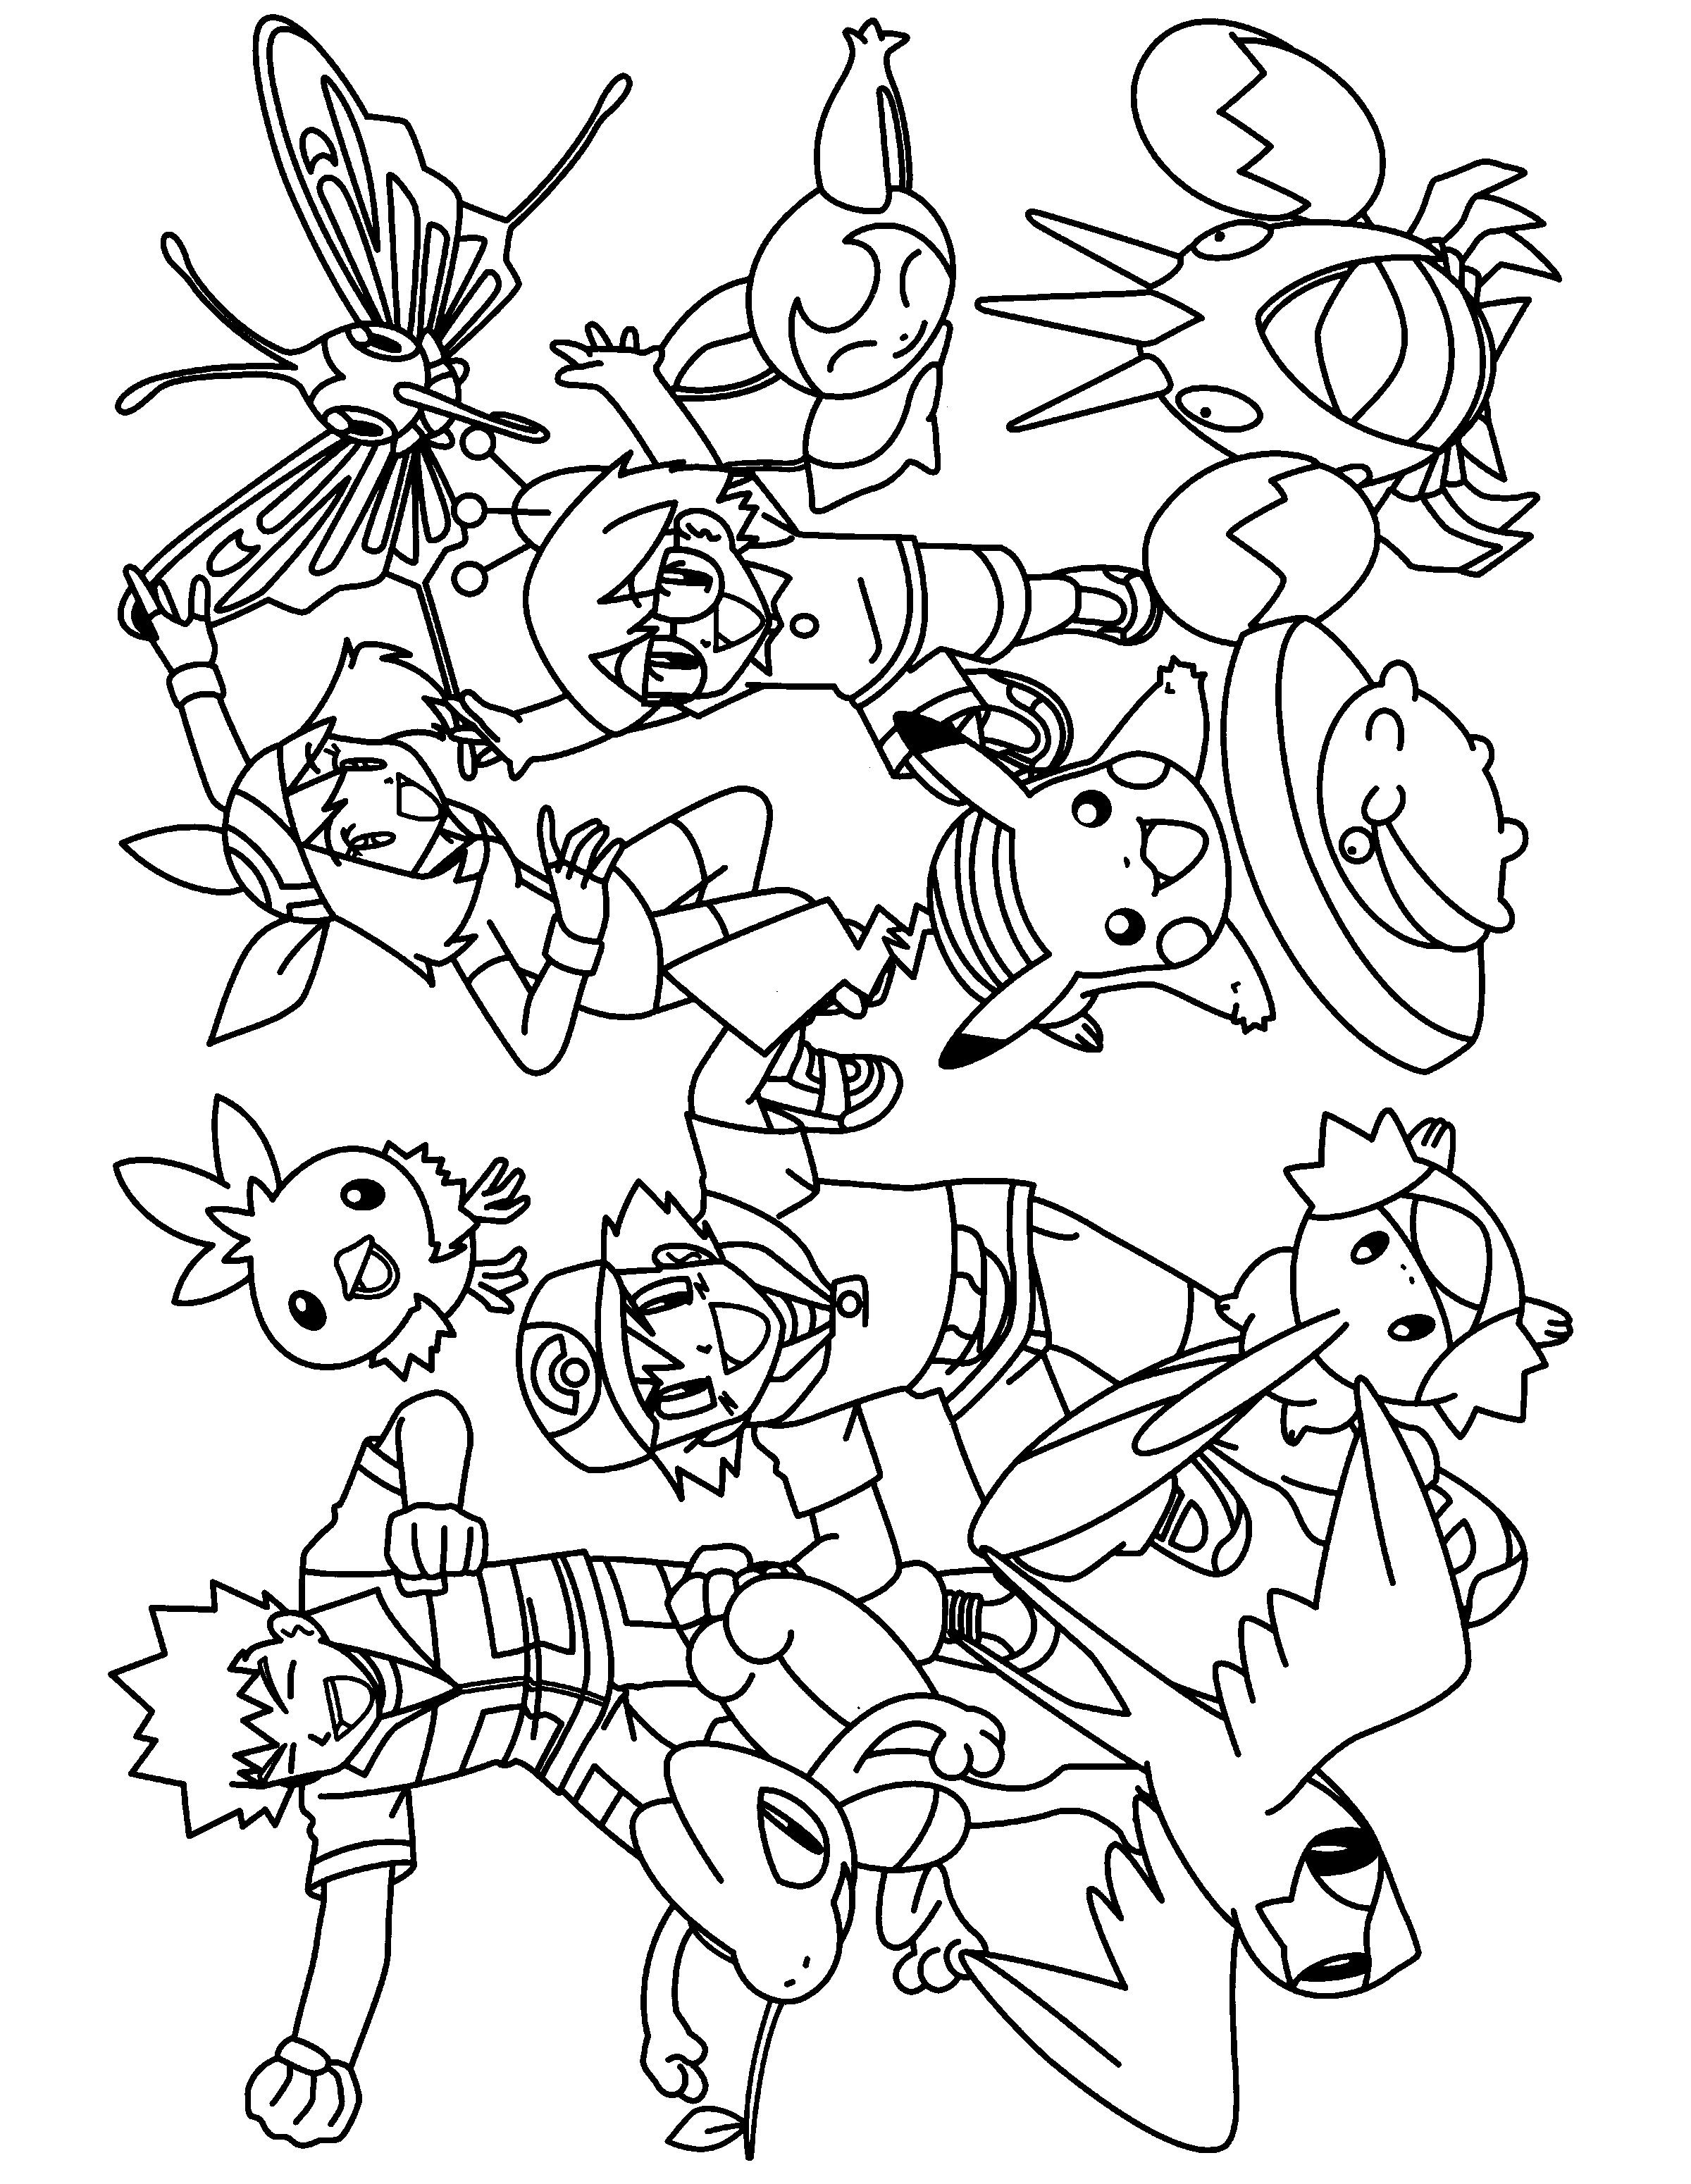 character coloring pages pokemon coloring pages join your favorite pokemon on an pages coloring character